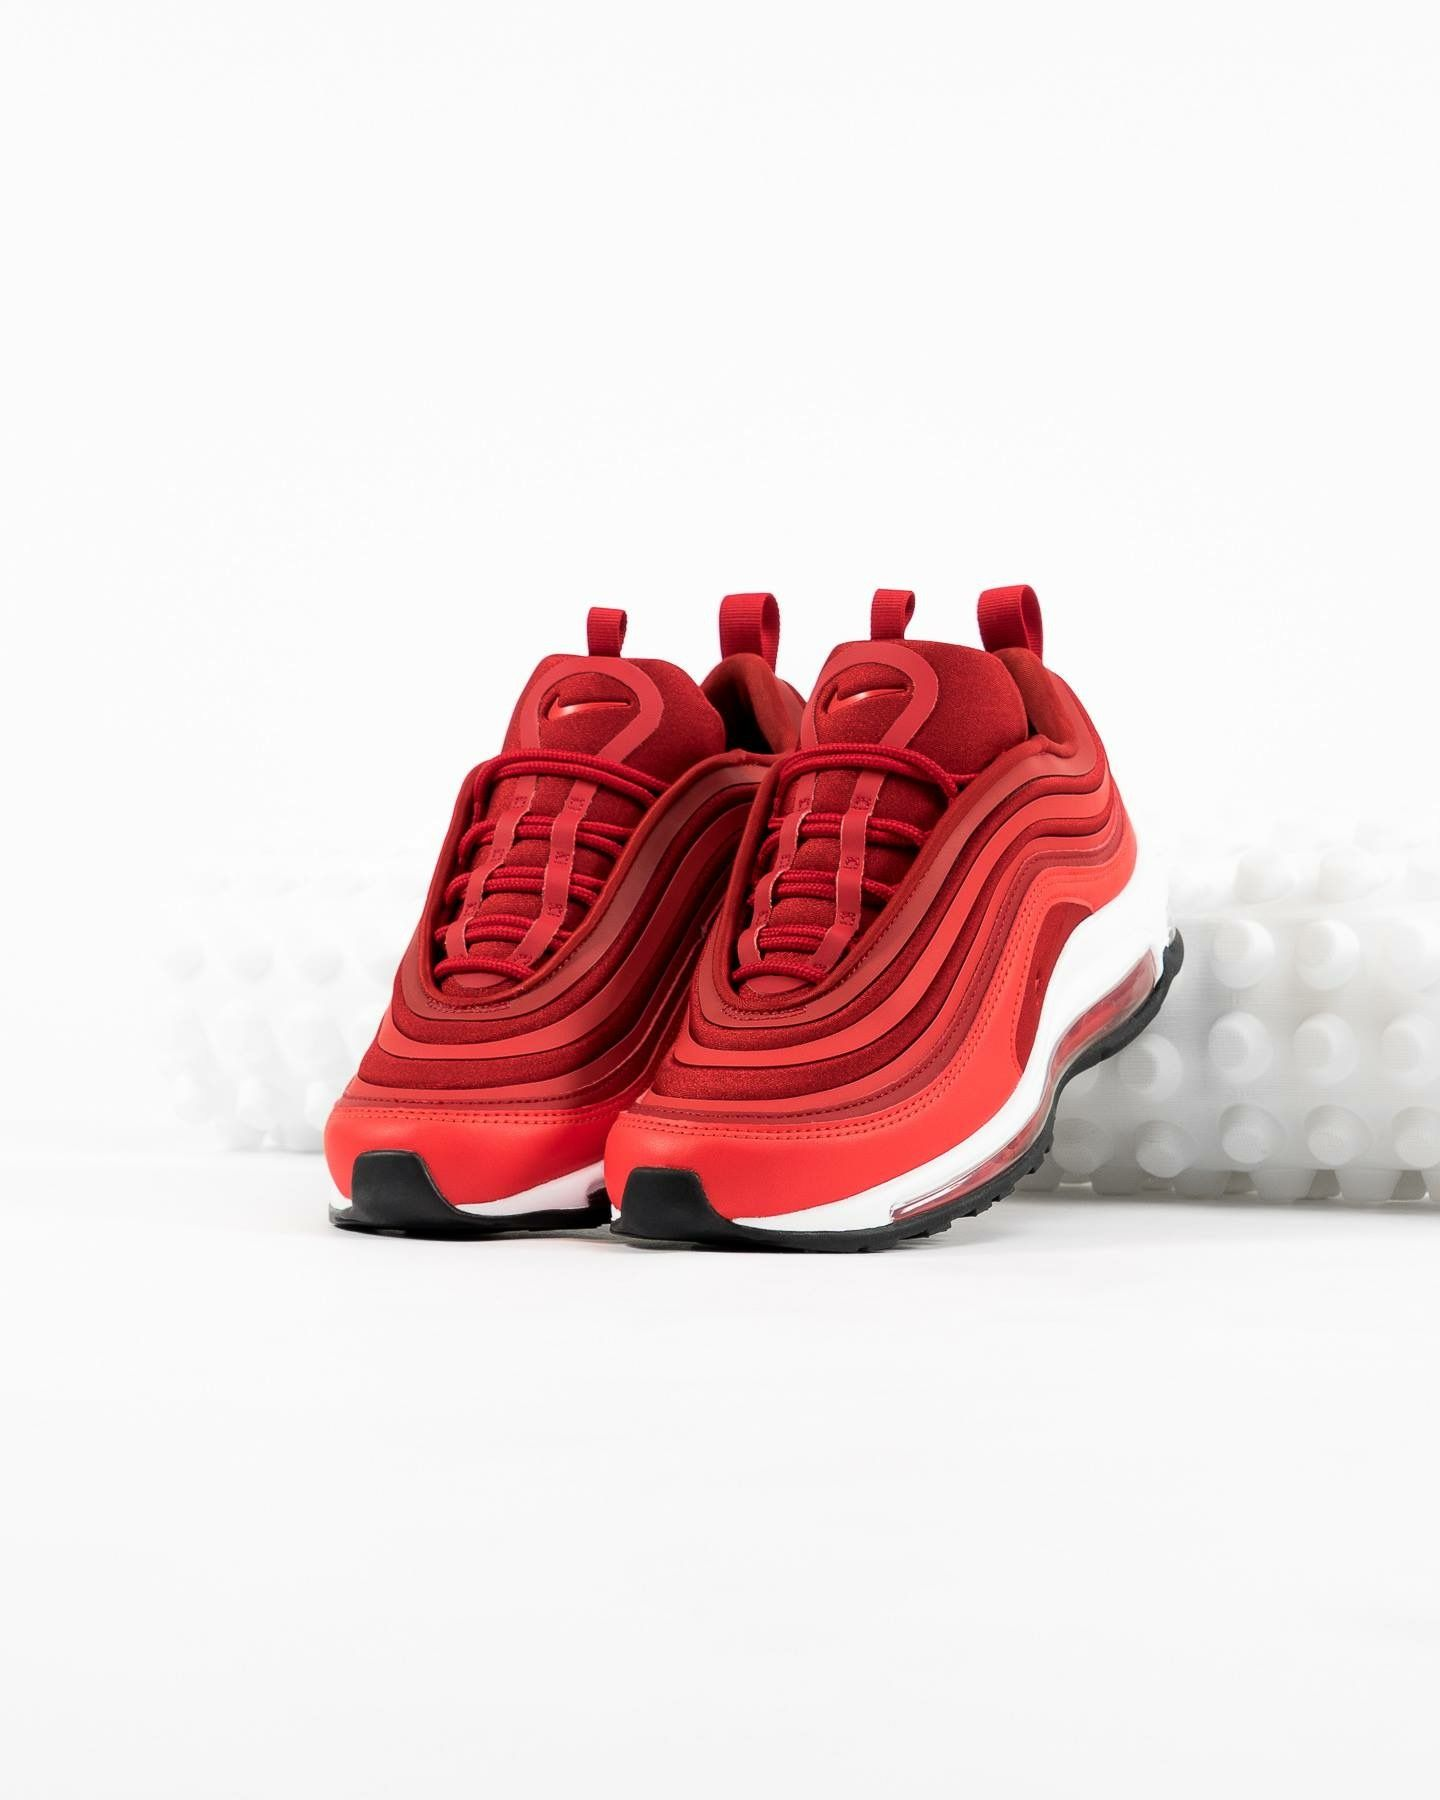 Nike Air Max 97 Ultra: Red | Nikes in 2019 | Red nike shoes